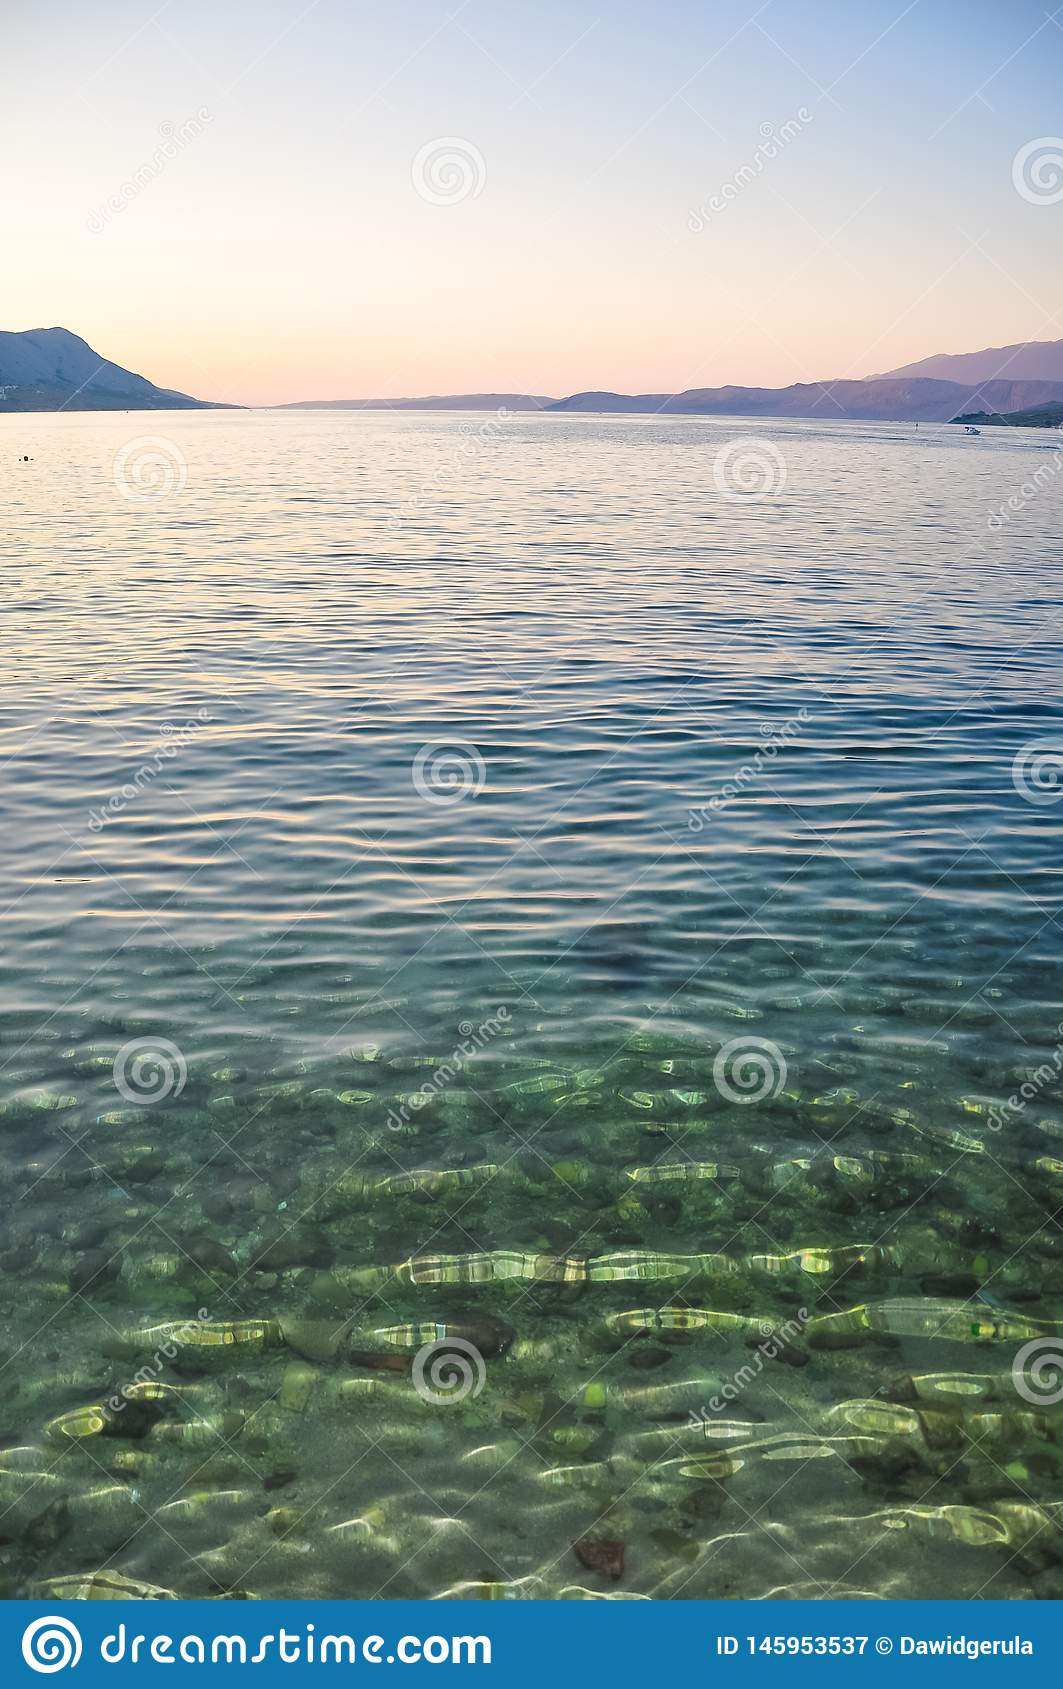 Crystal clear water in the coast of Adriatic Sea island Pag, Croatia after sunset